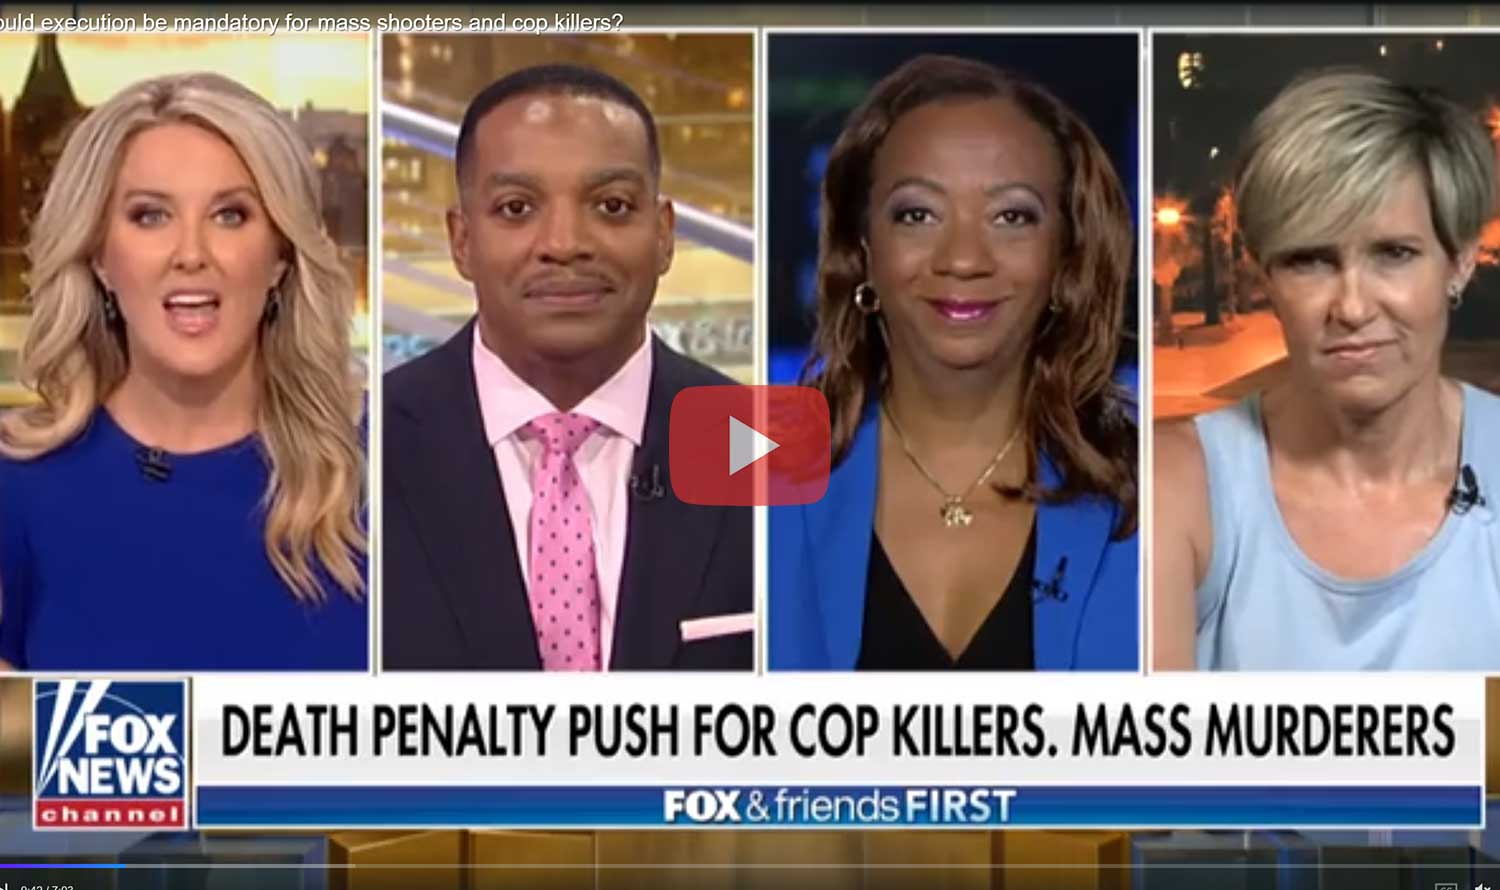 Fox and Friends First – Debbie Hines on the Death Penalty and A.G. Wm. Barr